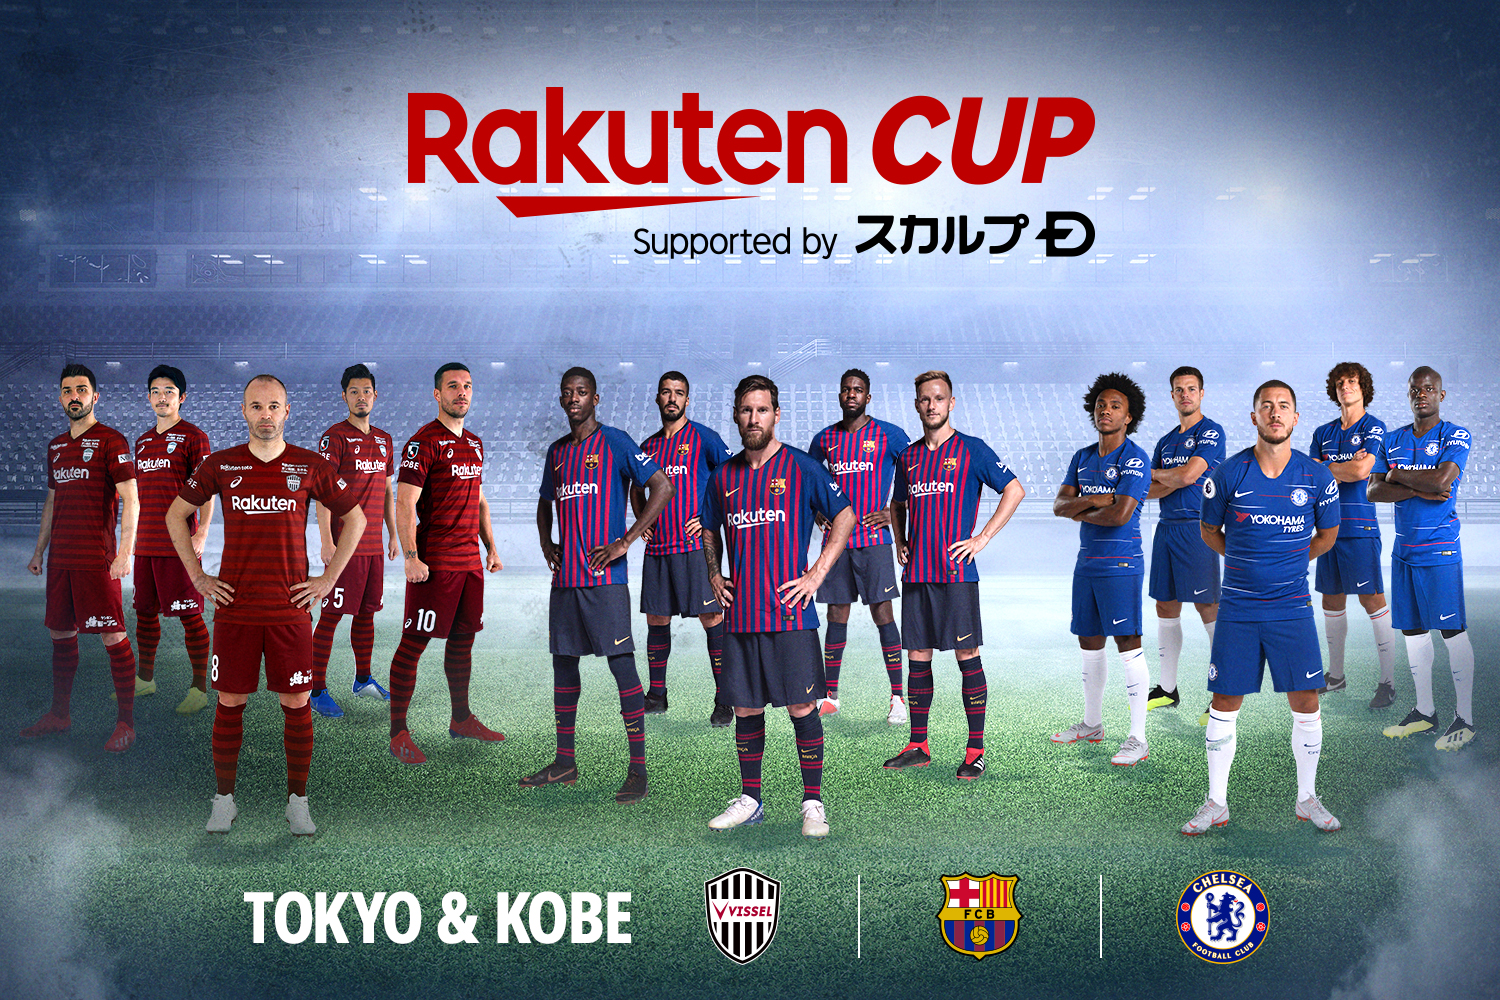 Rakuten Cup: Top 3 anticipated storylines for when Barca clash against Chelsea FC and Vissel Kobe in Japan this summer